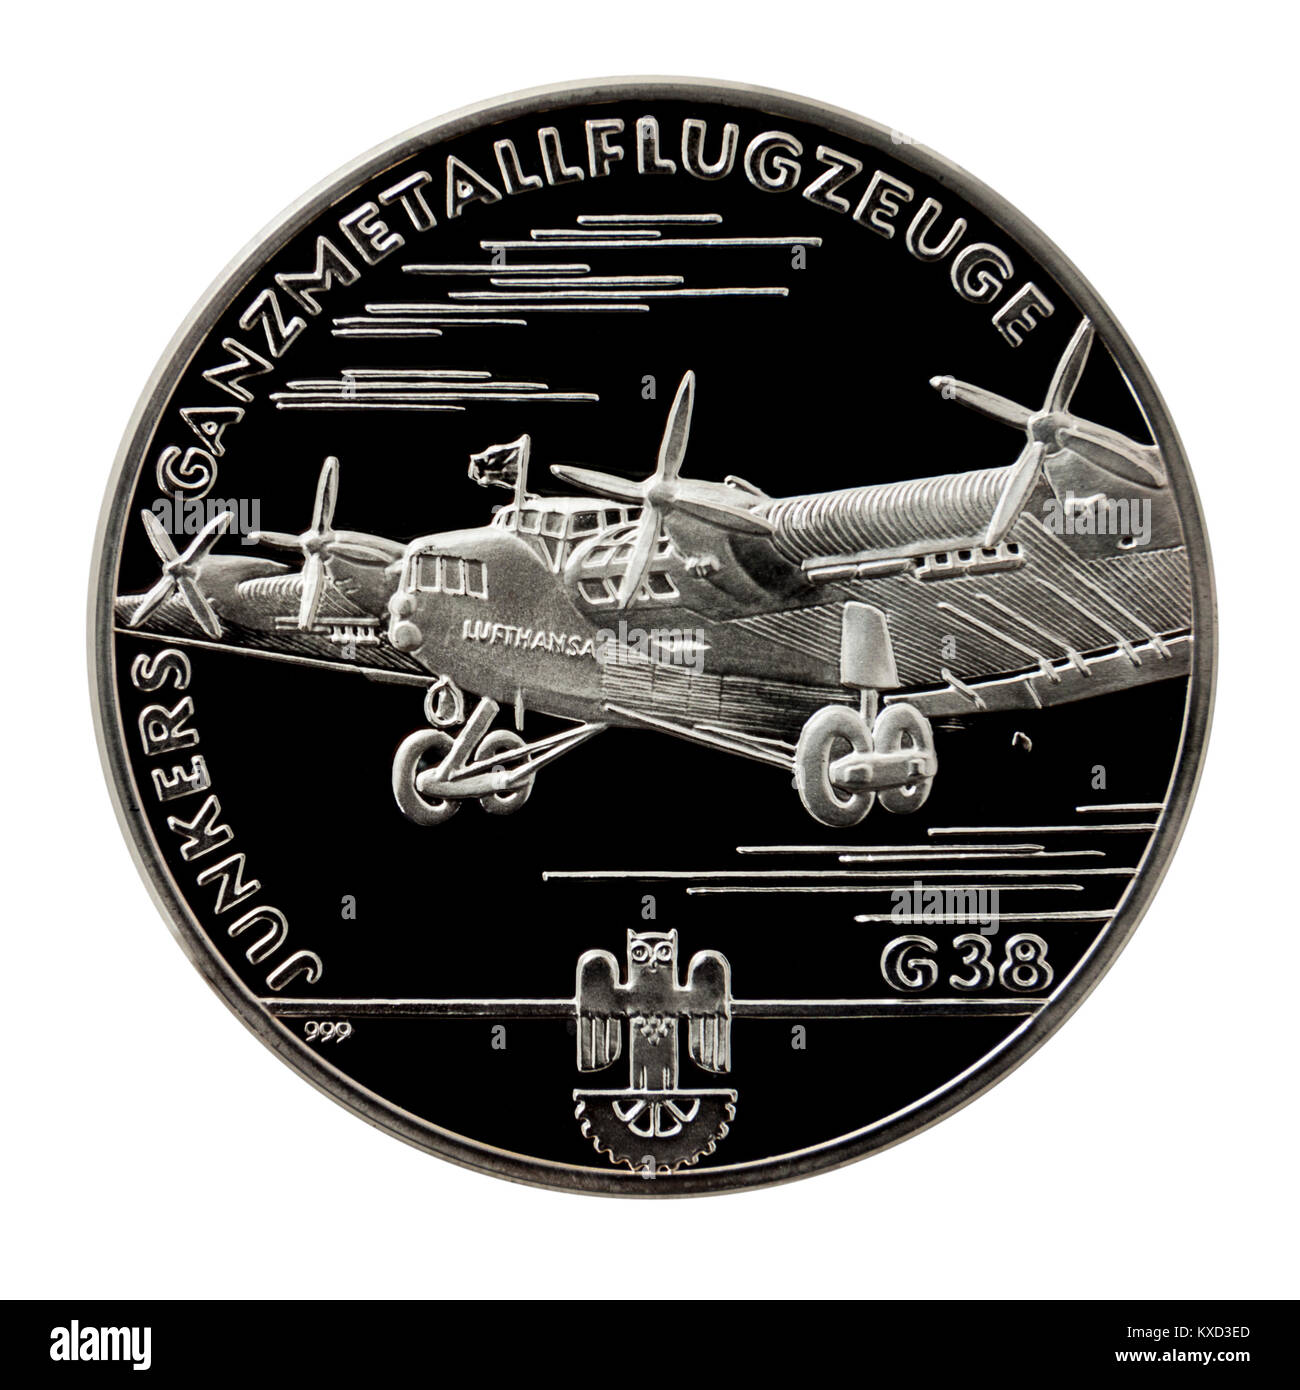 99.9% Proof Silver Medallion featuring the Junkers G.38 transport aircraft on one side and Hugo Junkers, the famous - Stock Image